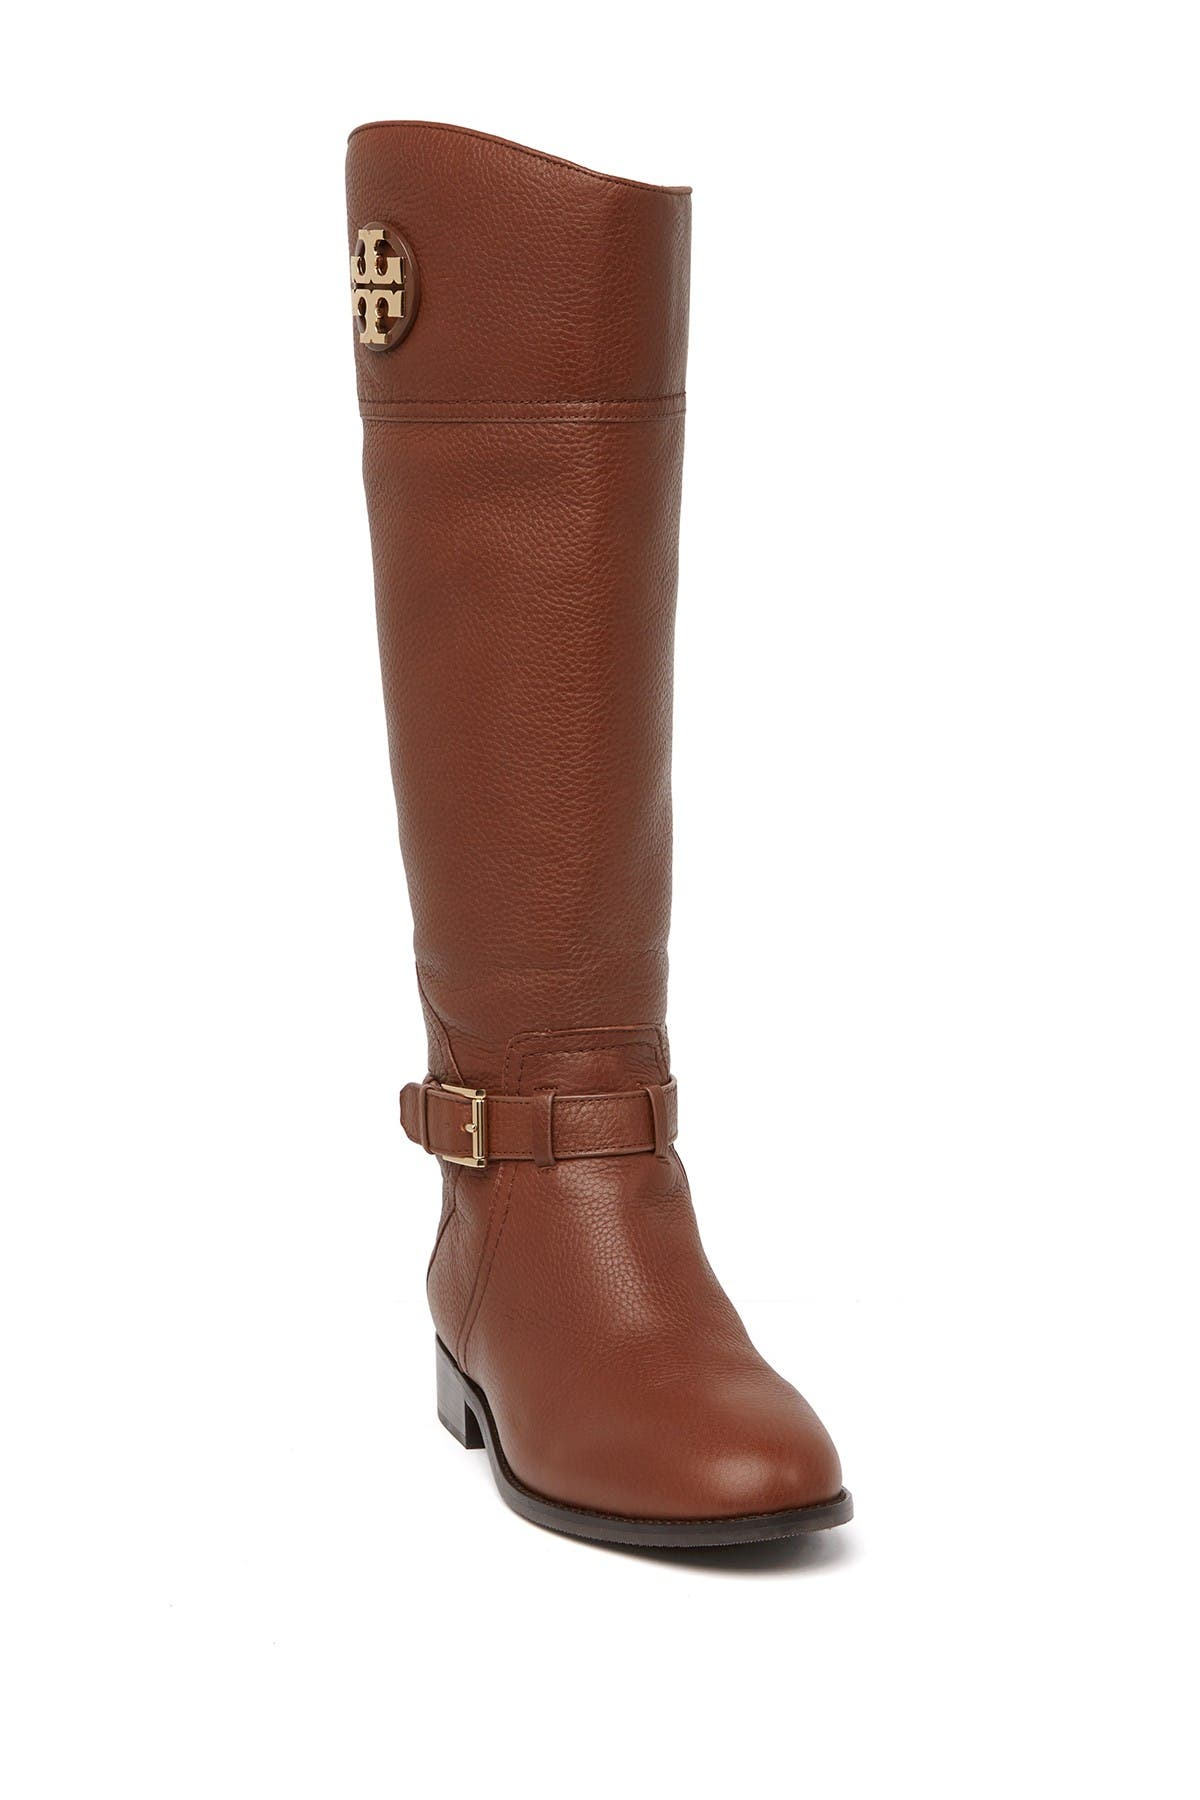 Adeline Tumbled Leather Riding Boot